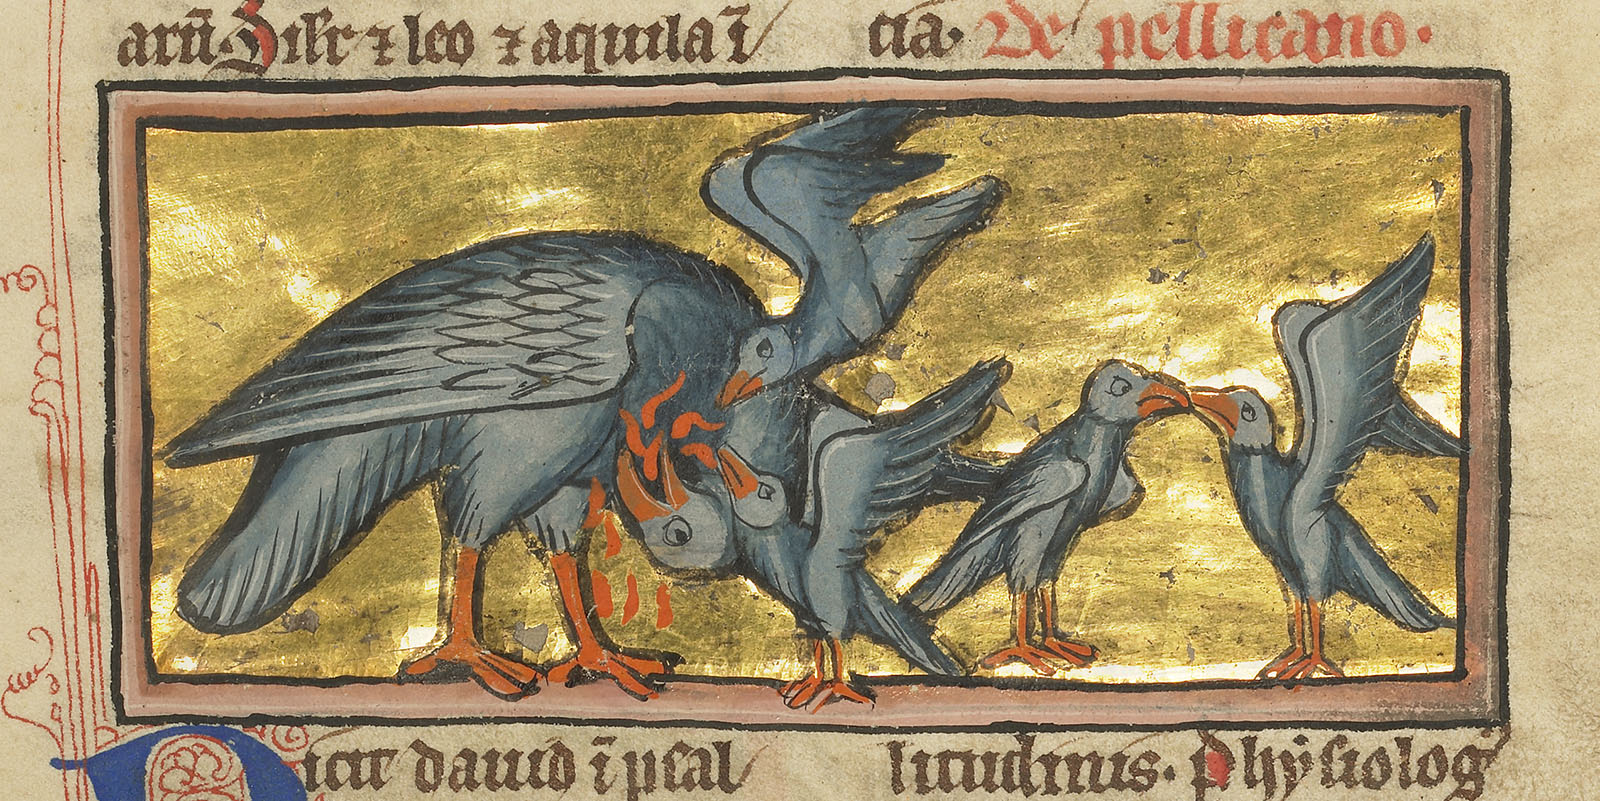 A pelican pierces her breast with her beak, reviving the children below with her blood.